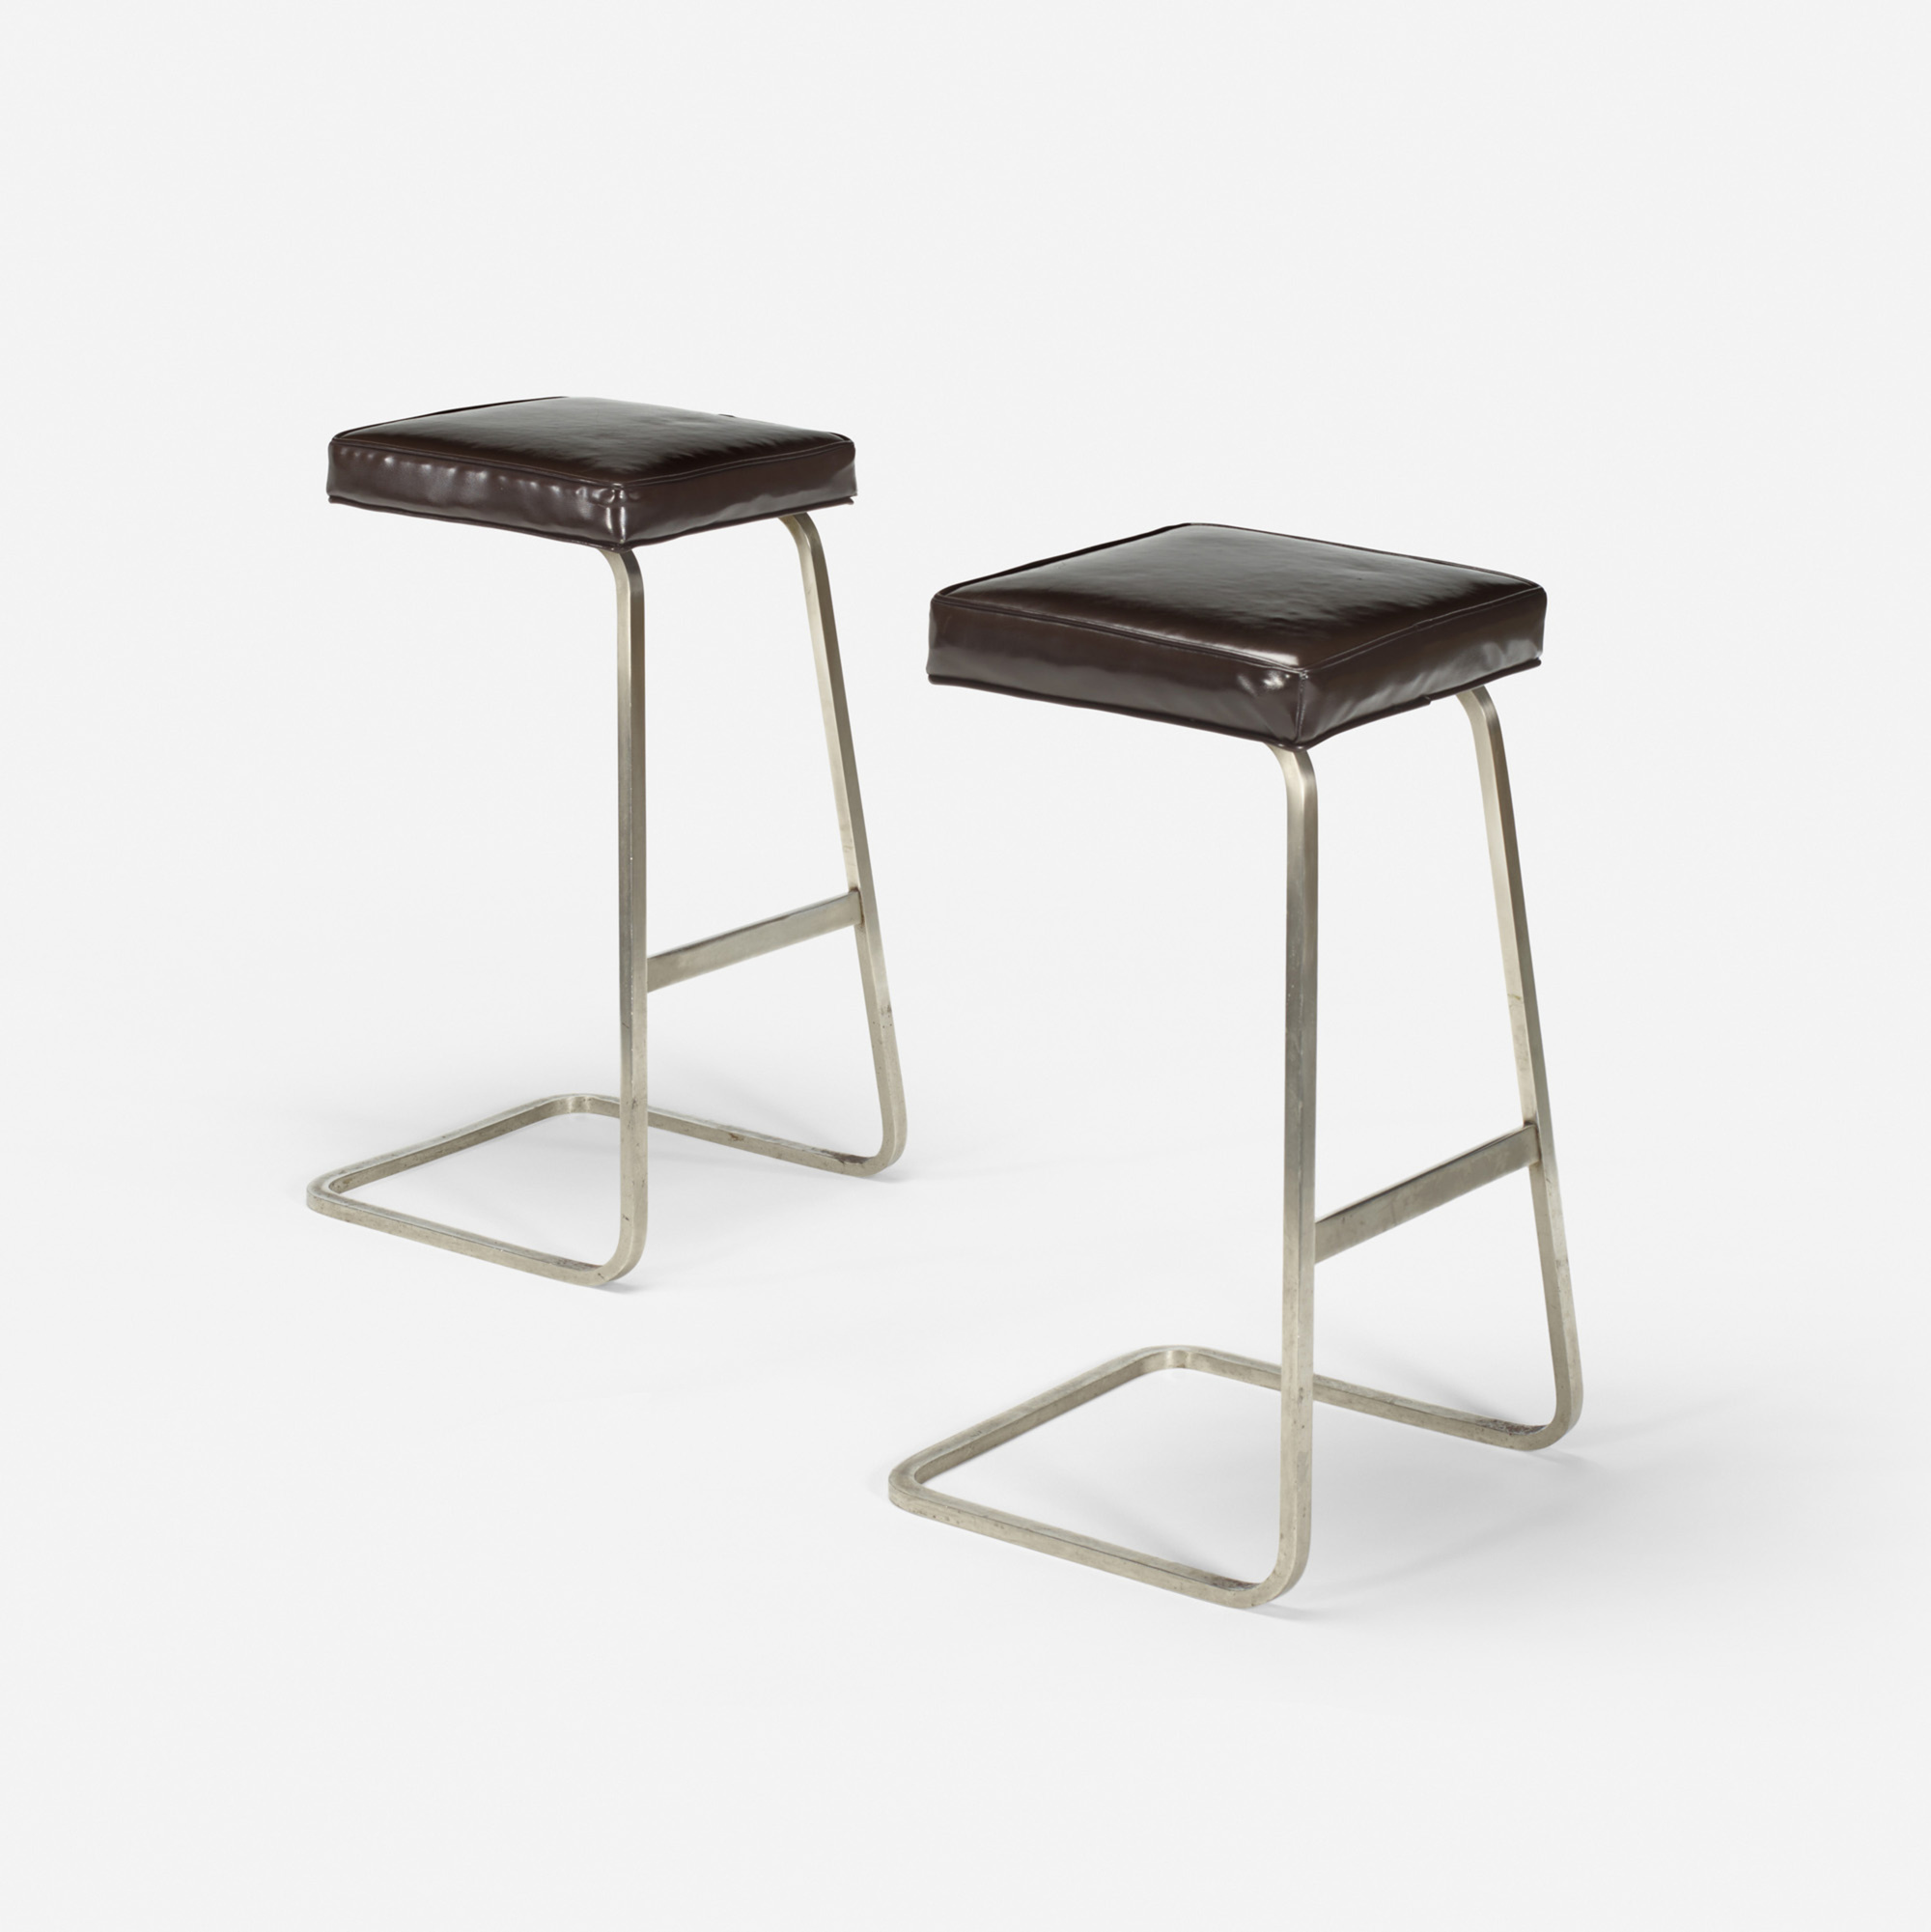 116: Ludwig Mies van der Rohe with Philip Johnson / Four Seasons bar stools from the Grill Room, pair (1 of 1)